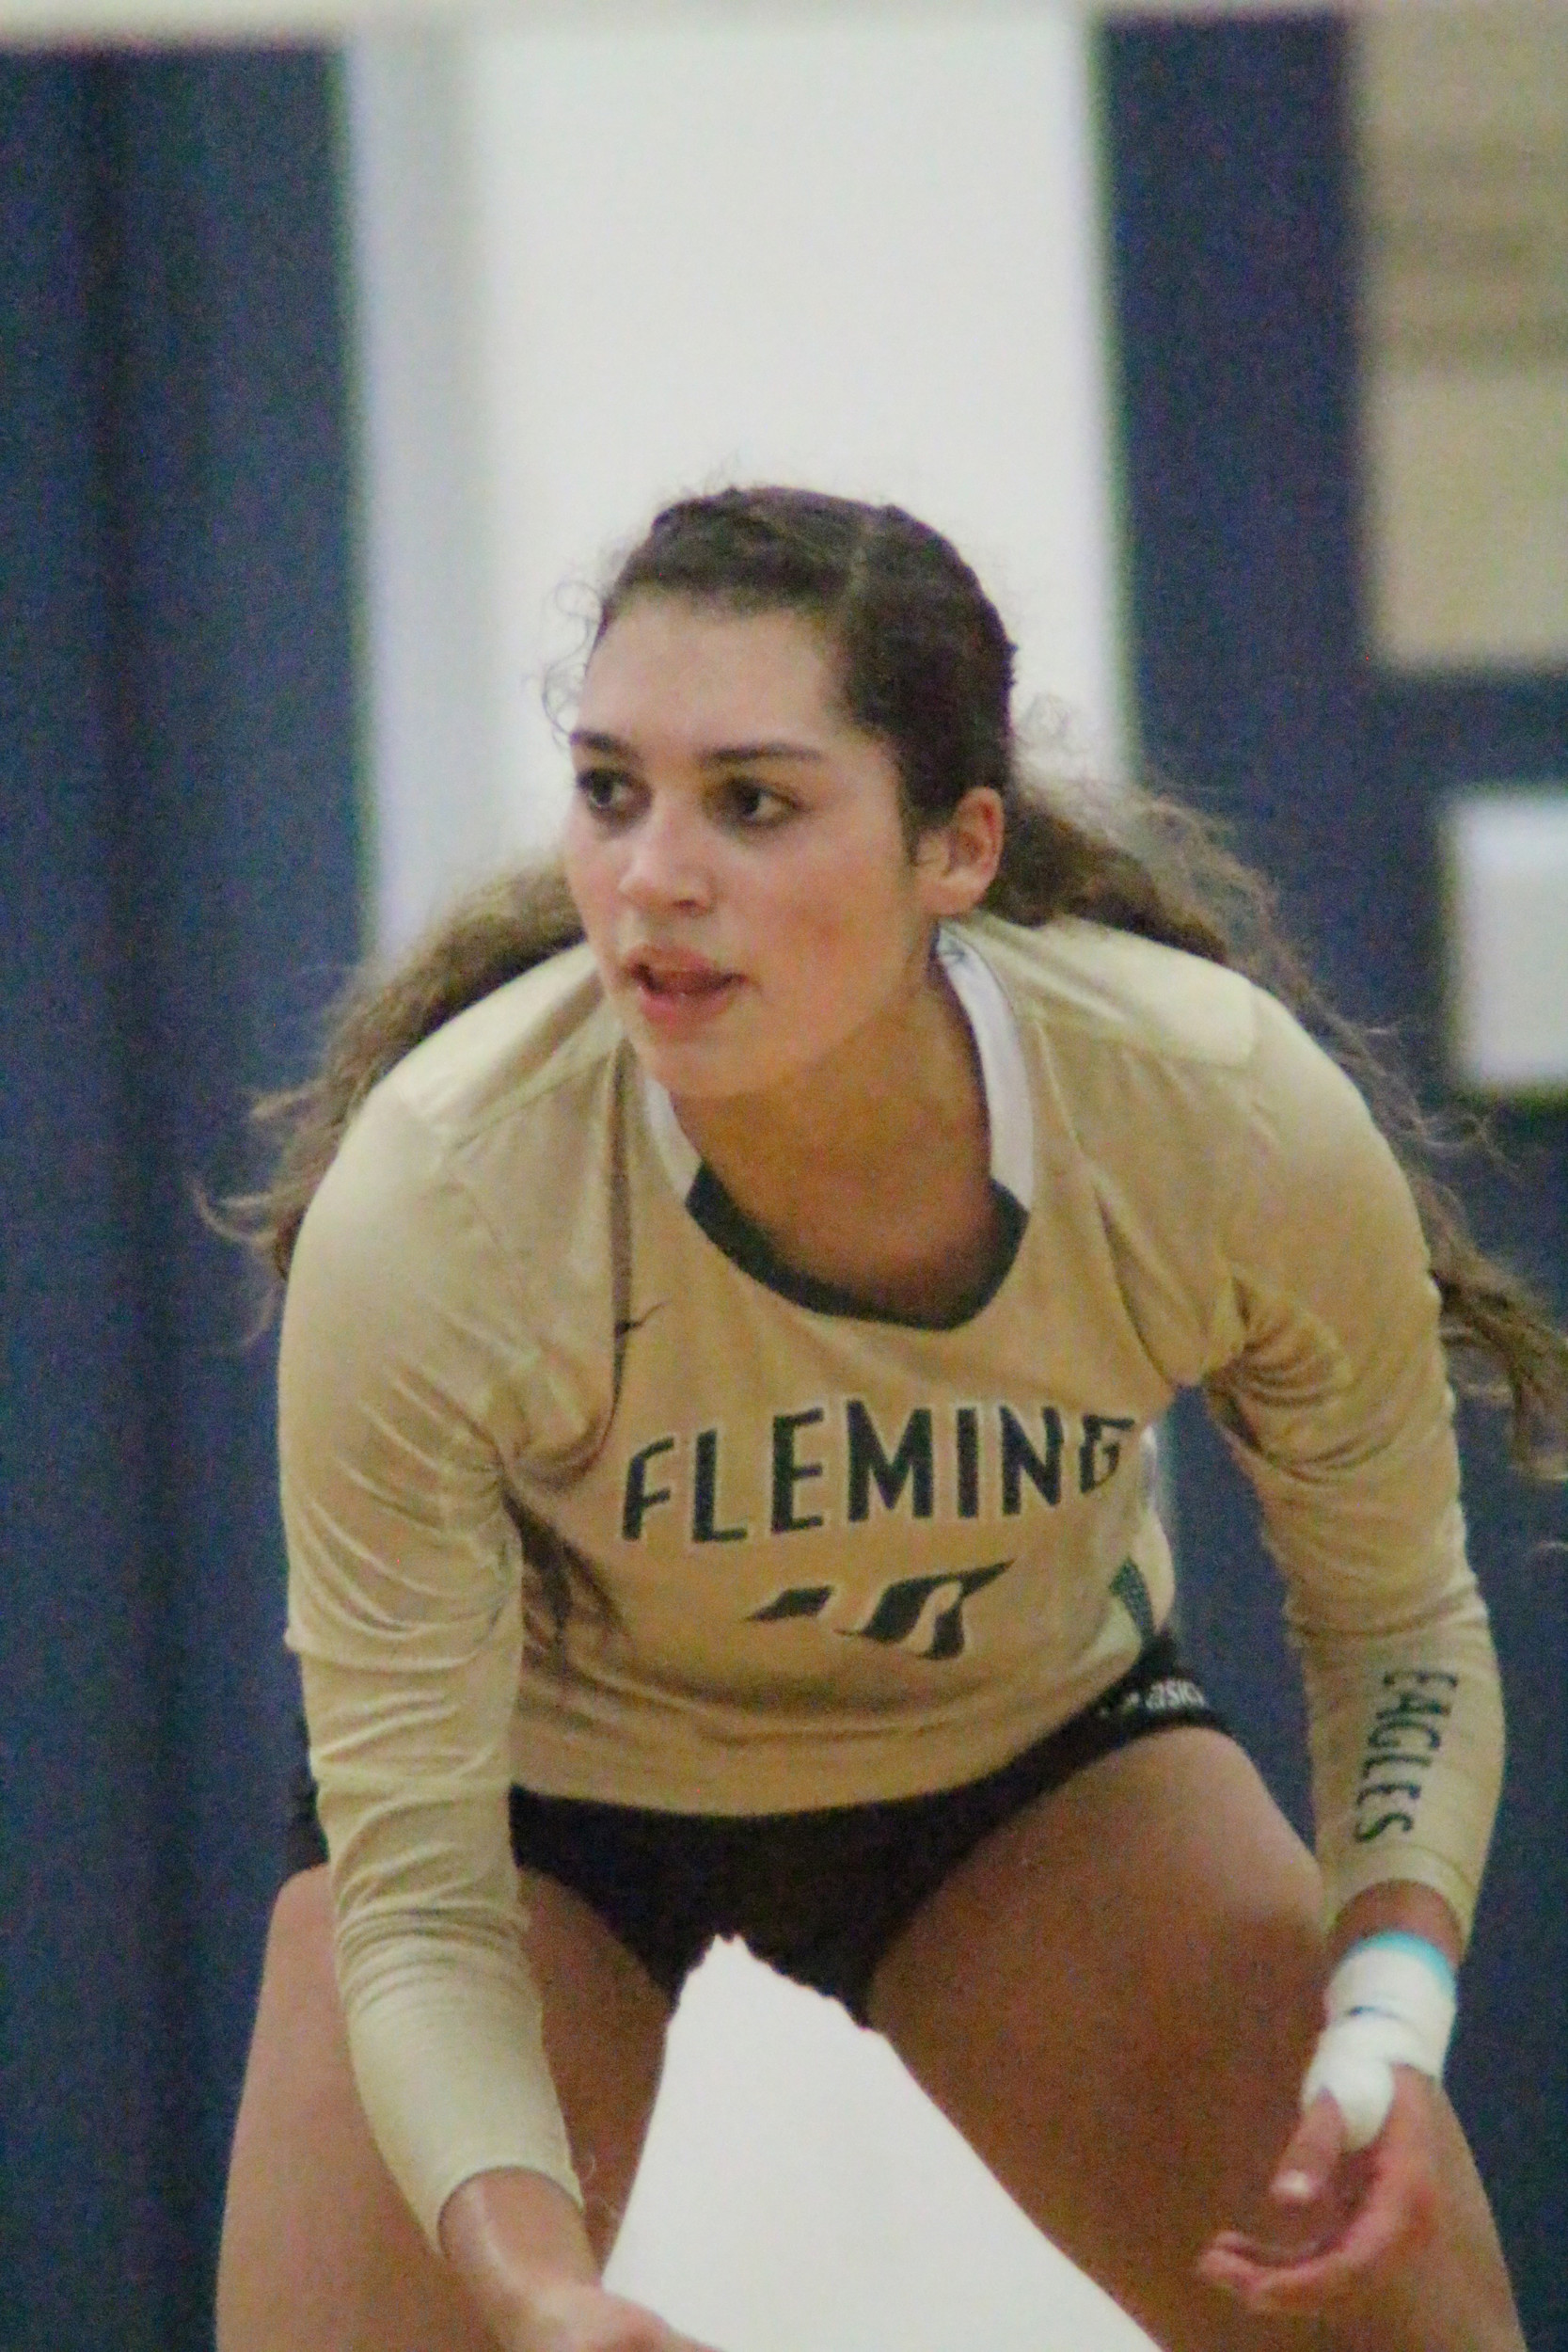 Fleming Island High libero Sydney Bates signed to continue her volleyball playing days at Towson State University in Maryland.